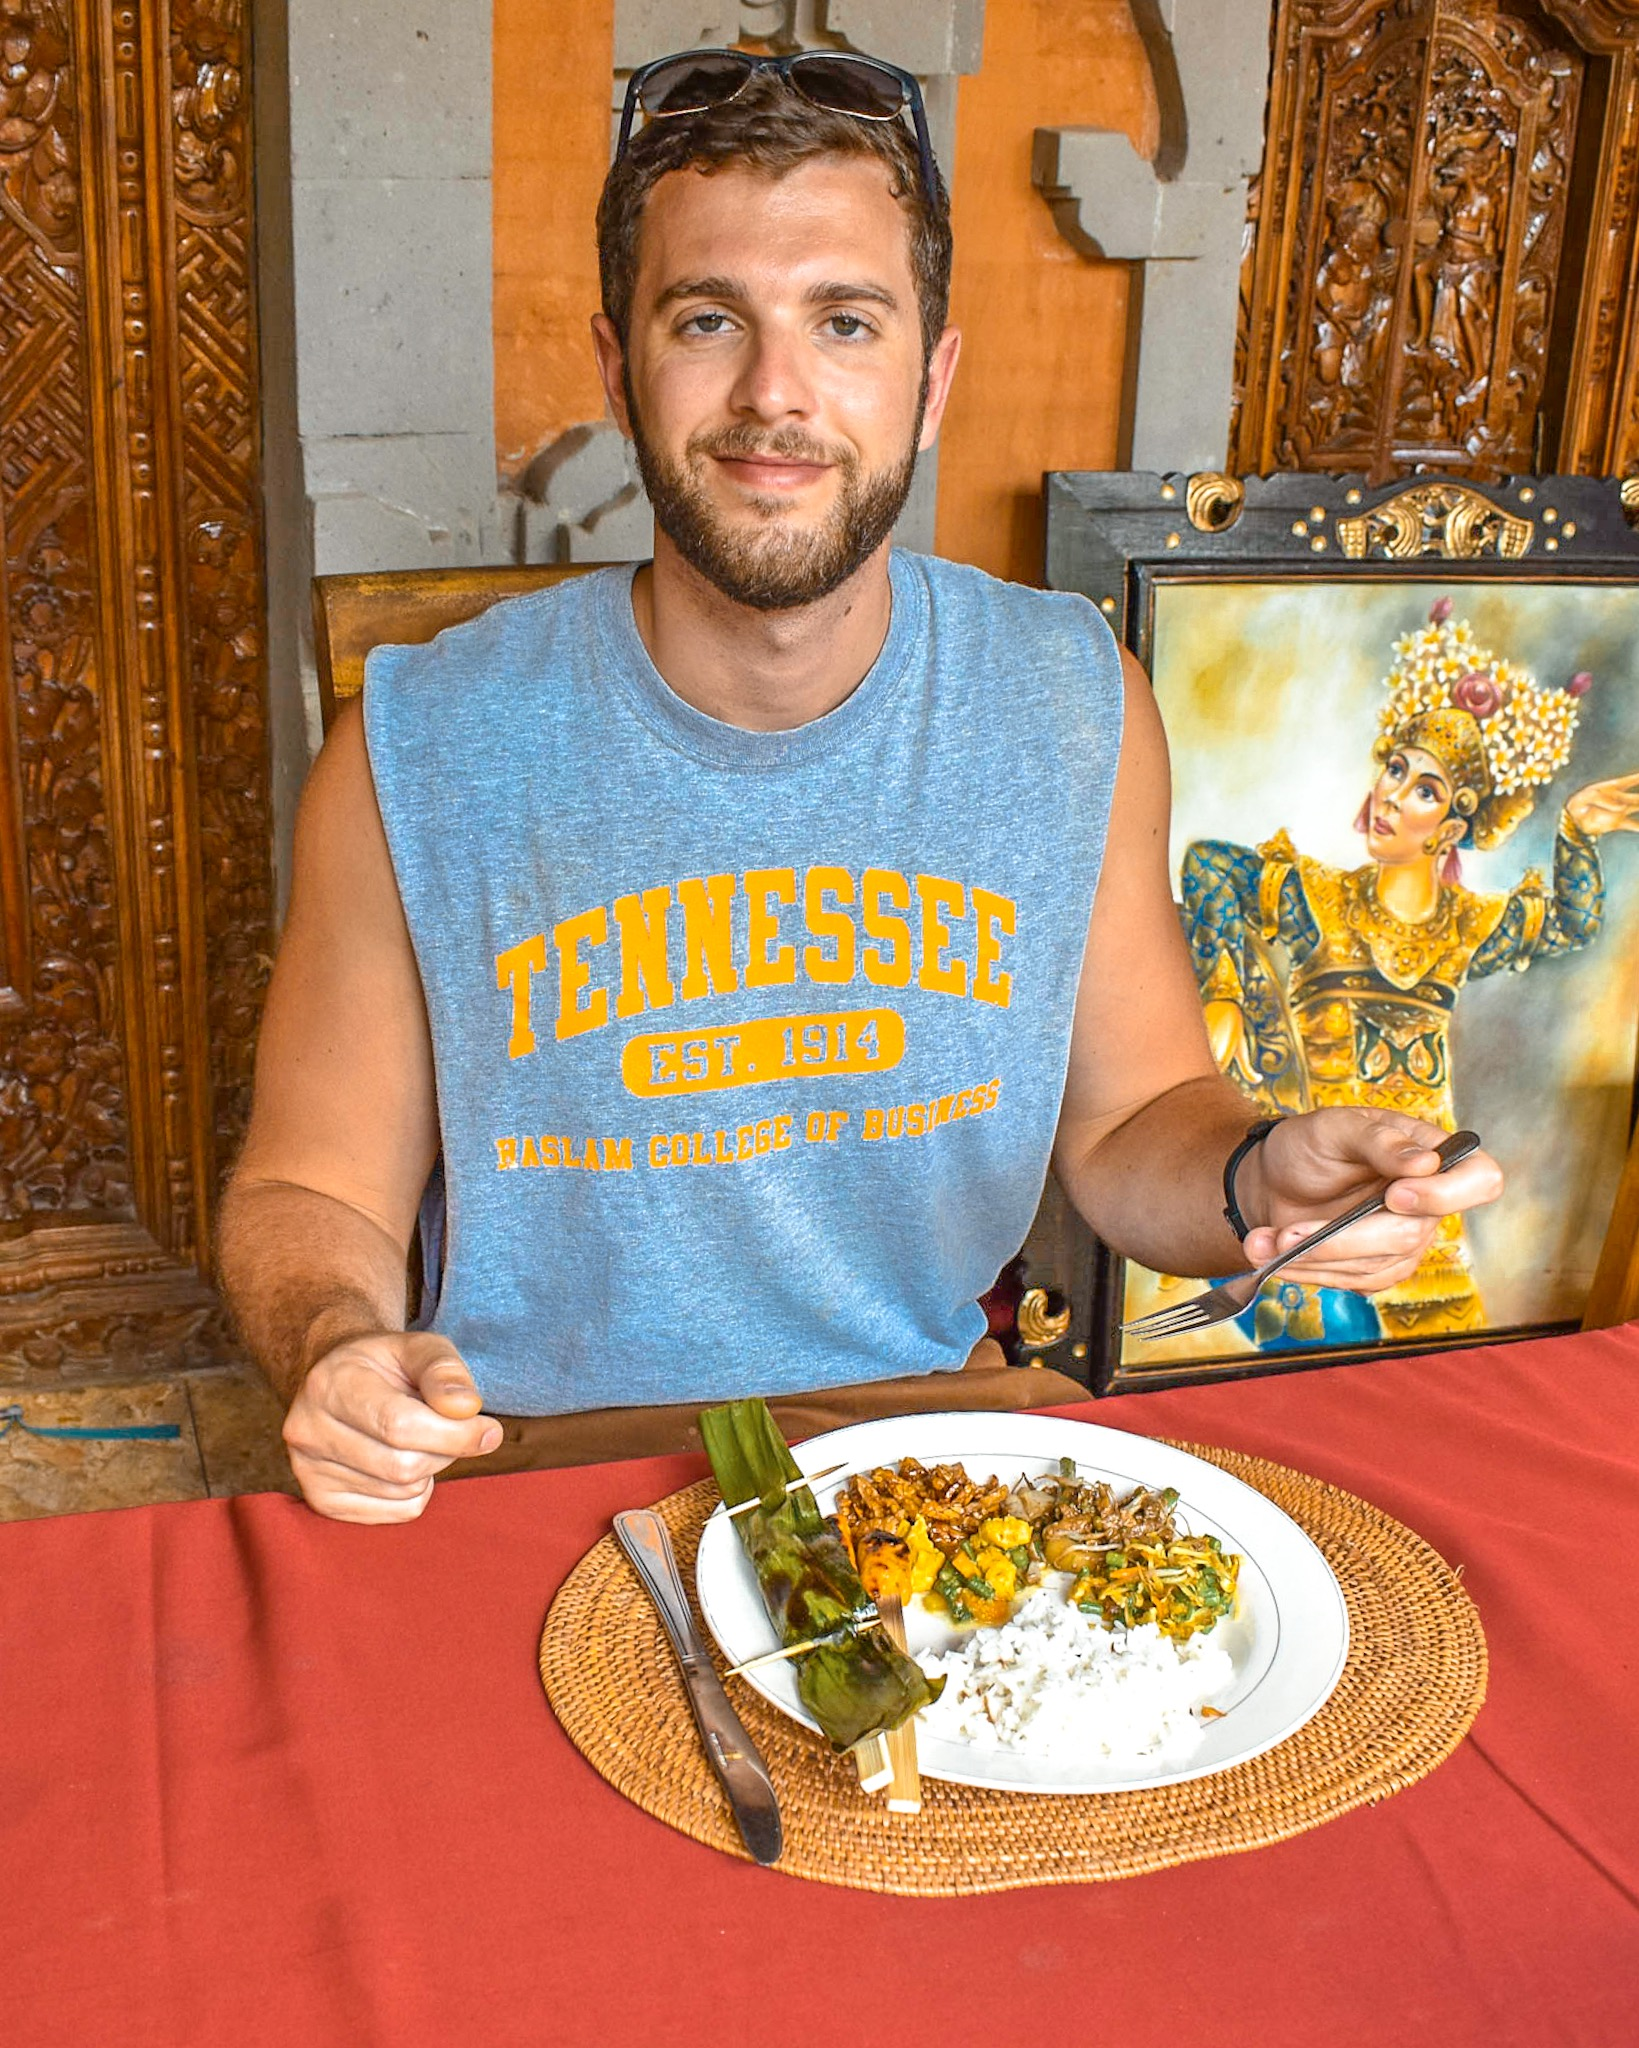 Man Enjoys Cooking Class in Bali